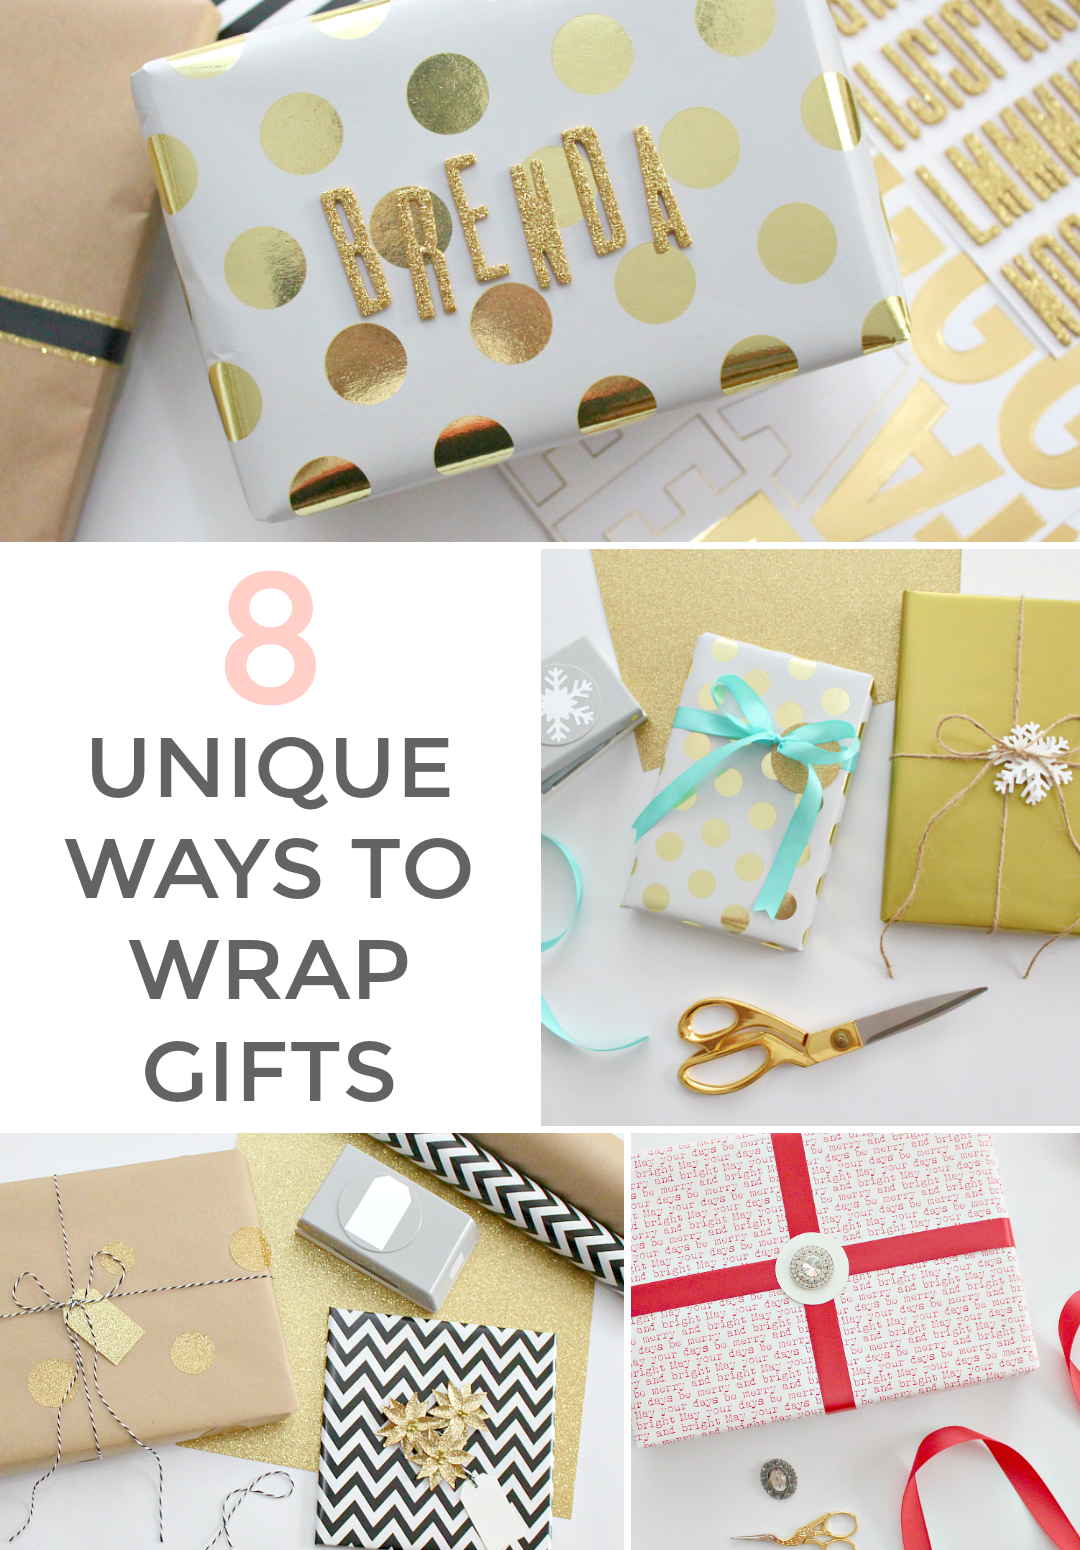 Dec 01,  · A gift really is as good as its wrapping paper. Buying and storing tons of wrapping paper every year can be a hassle. Plus, once you have your gifts ready to .